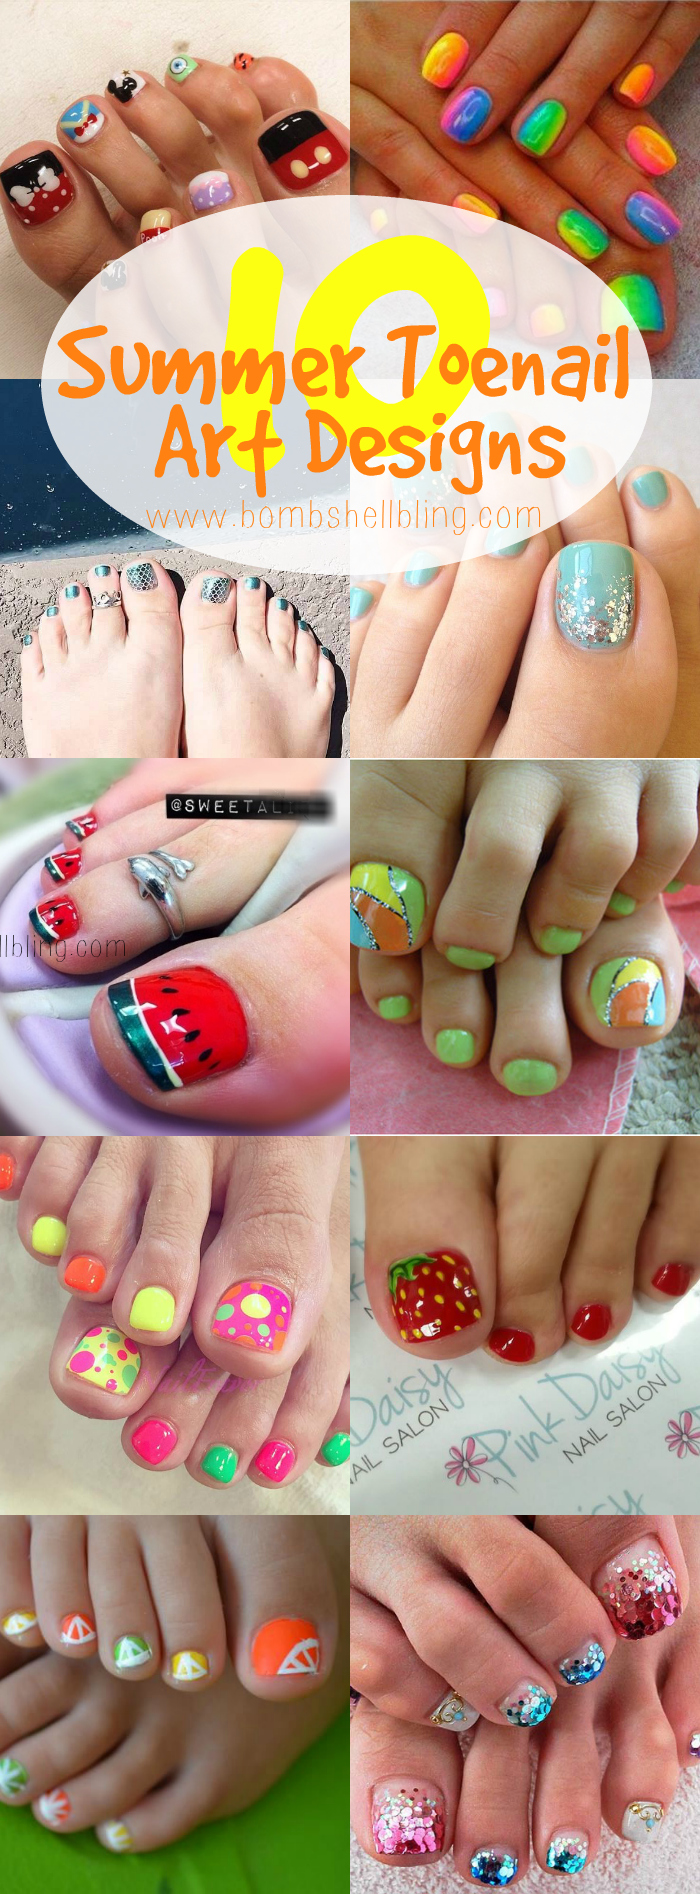 10 Summer Toenail Art Ideas